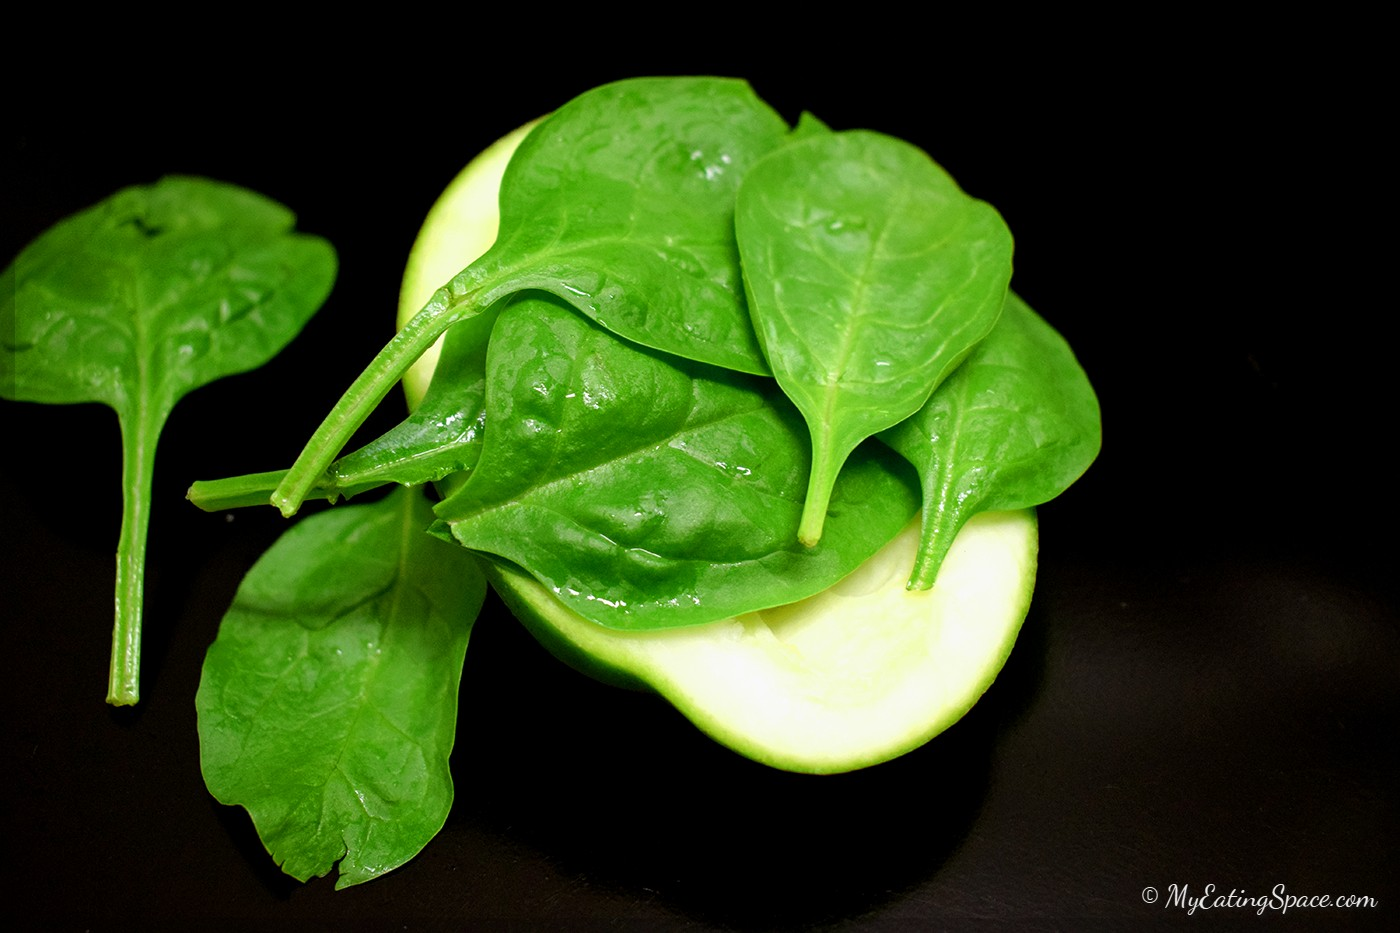 Flat leaf spinach is tender, smooth and mildly sweet. They are eaten raw in salads and smoothies and cooked in soups. They are good as baby foods.